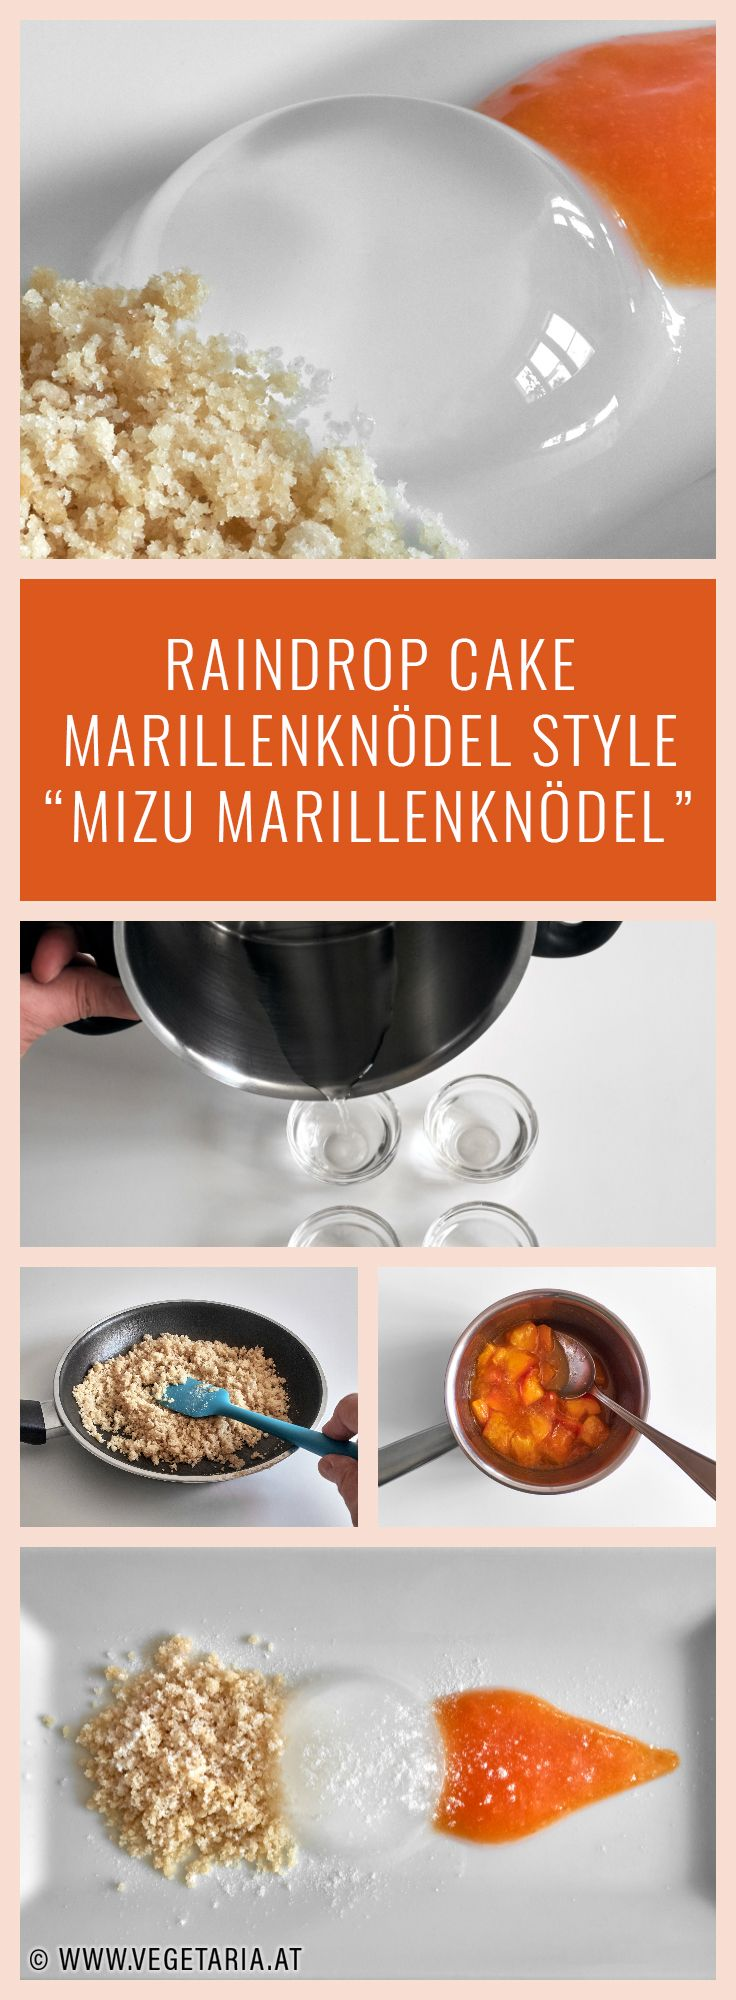 This fascinating recipe brings an Austrian touch to a Japanese dessert.